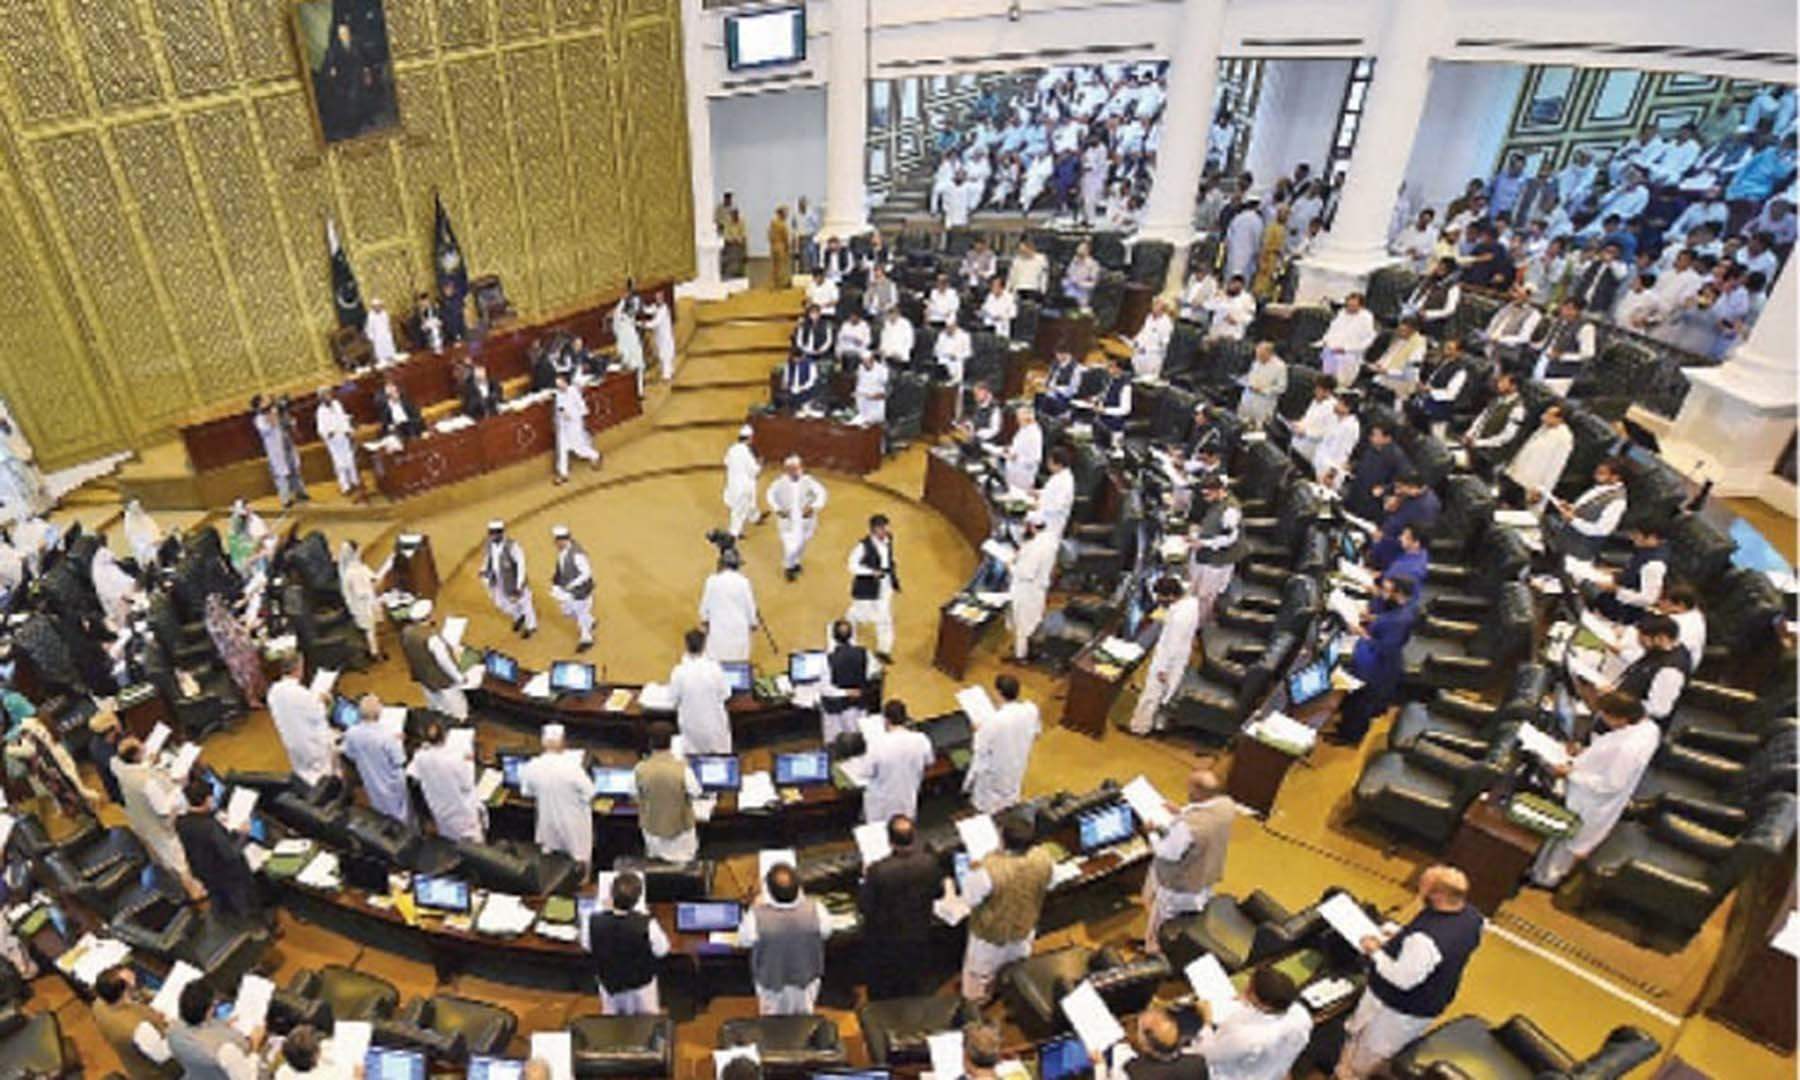 The provincial assembly on Friday passed the Khyber Pakhtunkhwa Witness Protection Bill, 2021. — Photo by Abdul Majeed Goraya/File